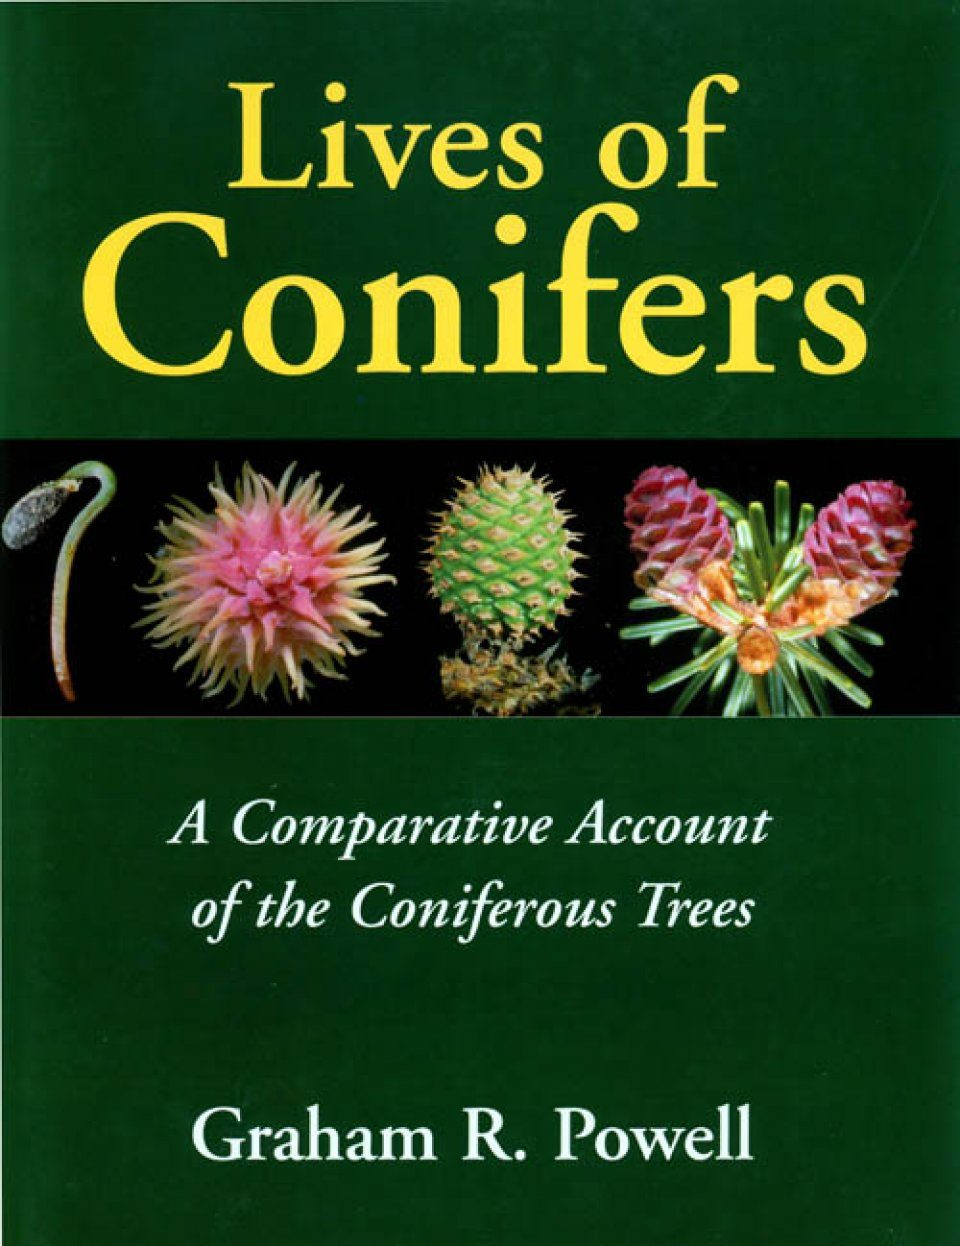 Lives of Conifers